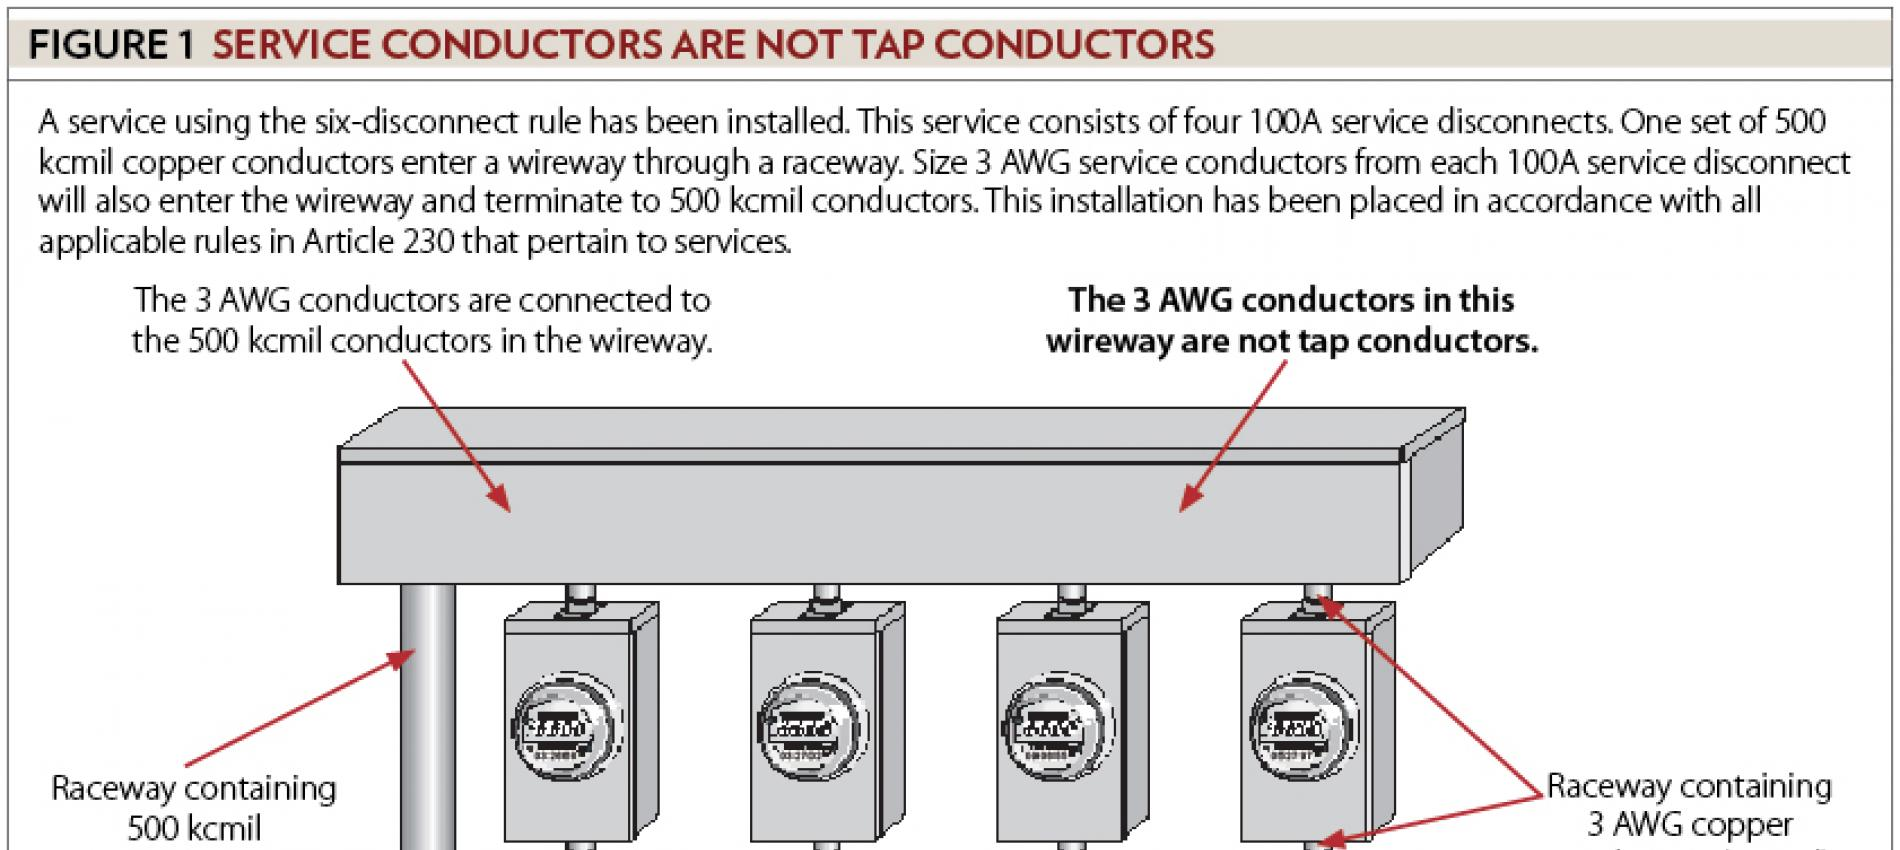 Wire size kcmil vs mcm cargo mate trailer wiring diagram charming belden wire size and ampacity photos the best electrical cif20fig201 belden wire size and ampacity wire size kcmil vs mcm wire size kcmil vs mcm keyboard keysfo Gallery